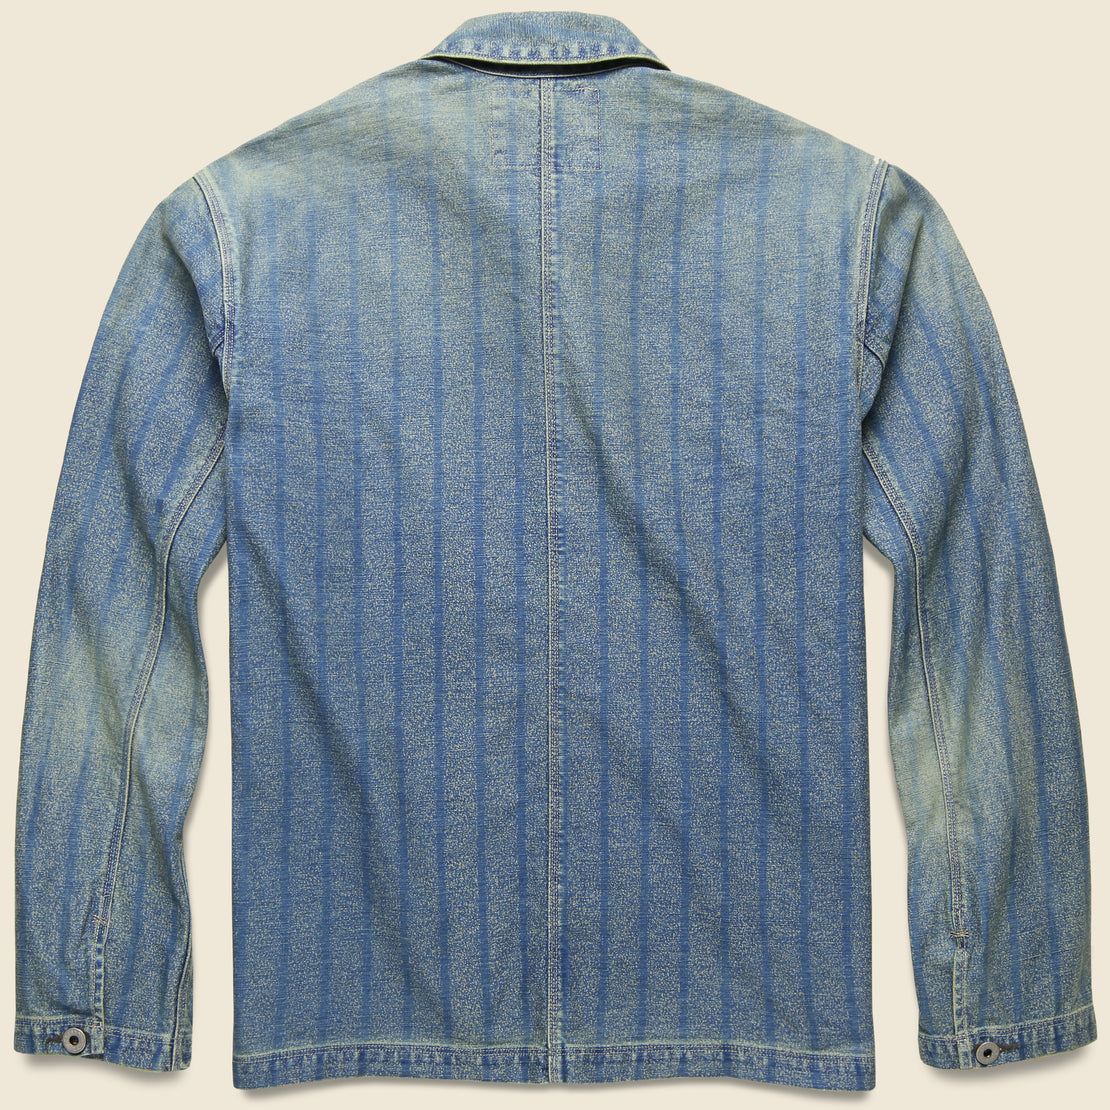 Striped Indigo Twill Jacket - Indigo